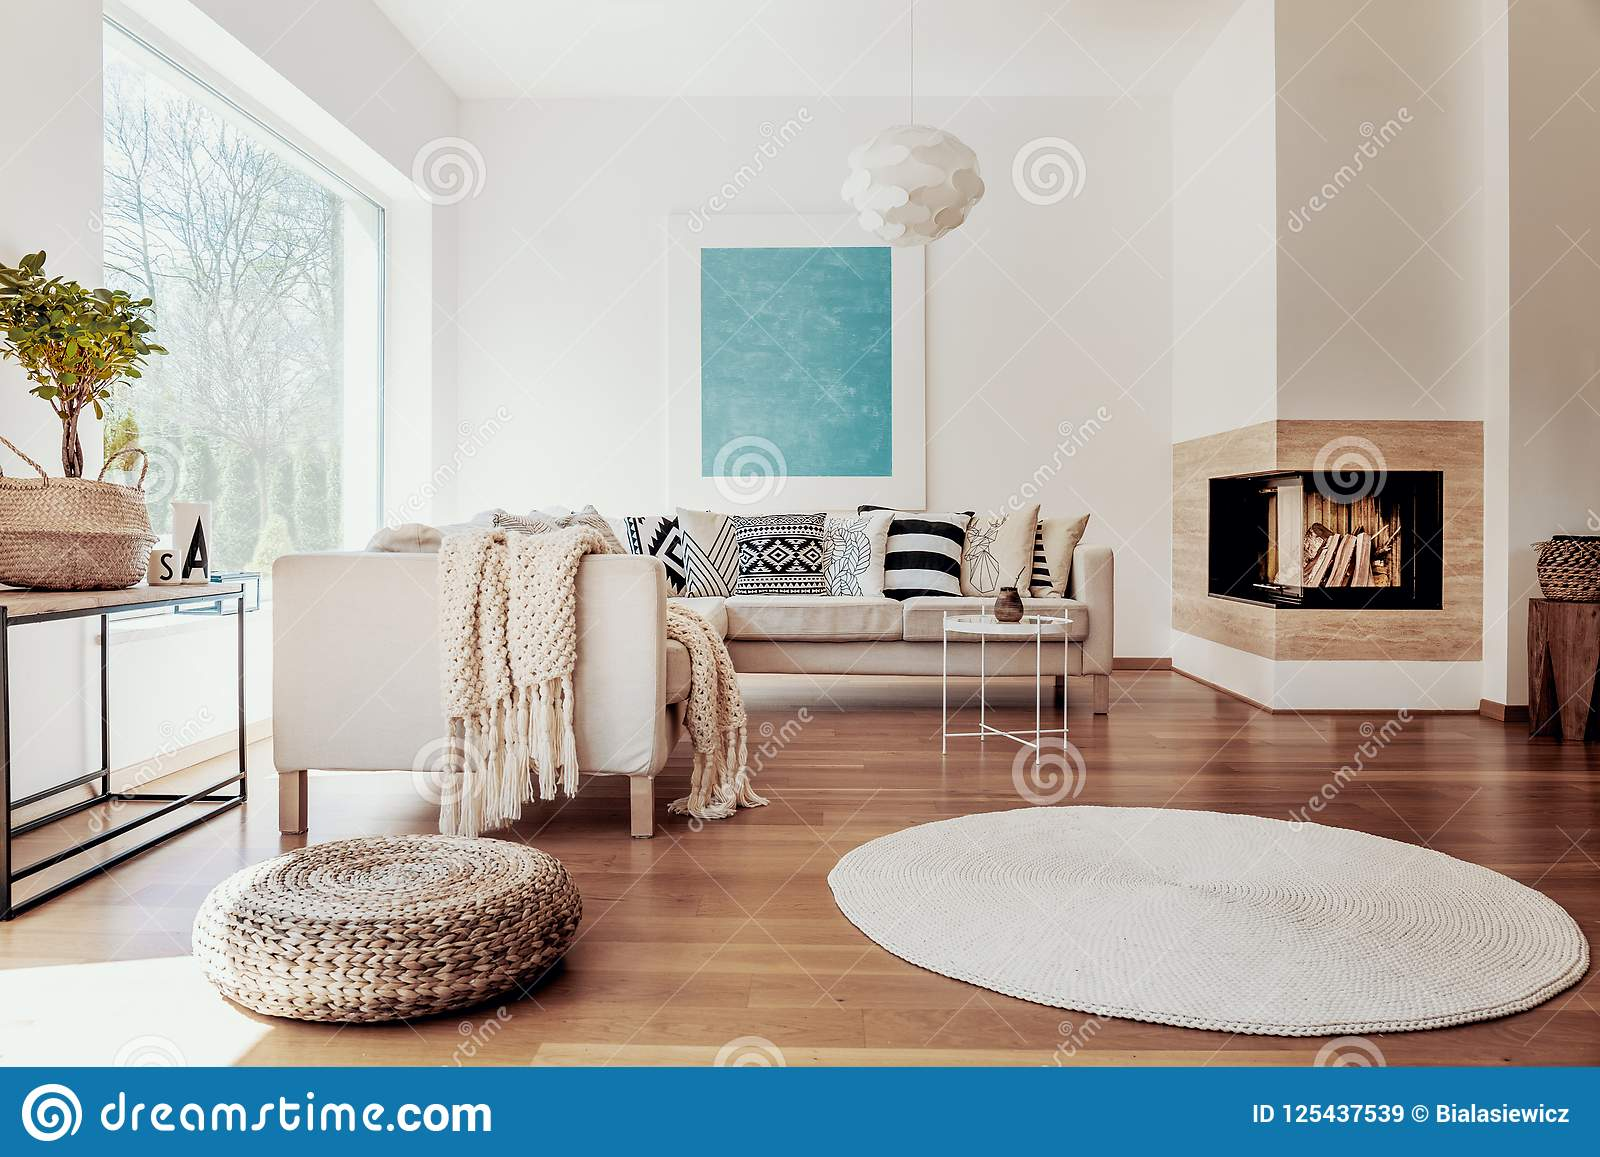 Beige And White Textiles And A Modern Spherical Pendant